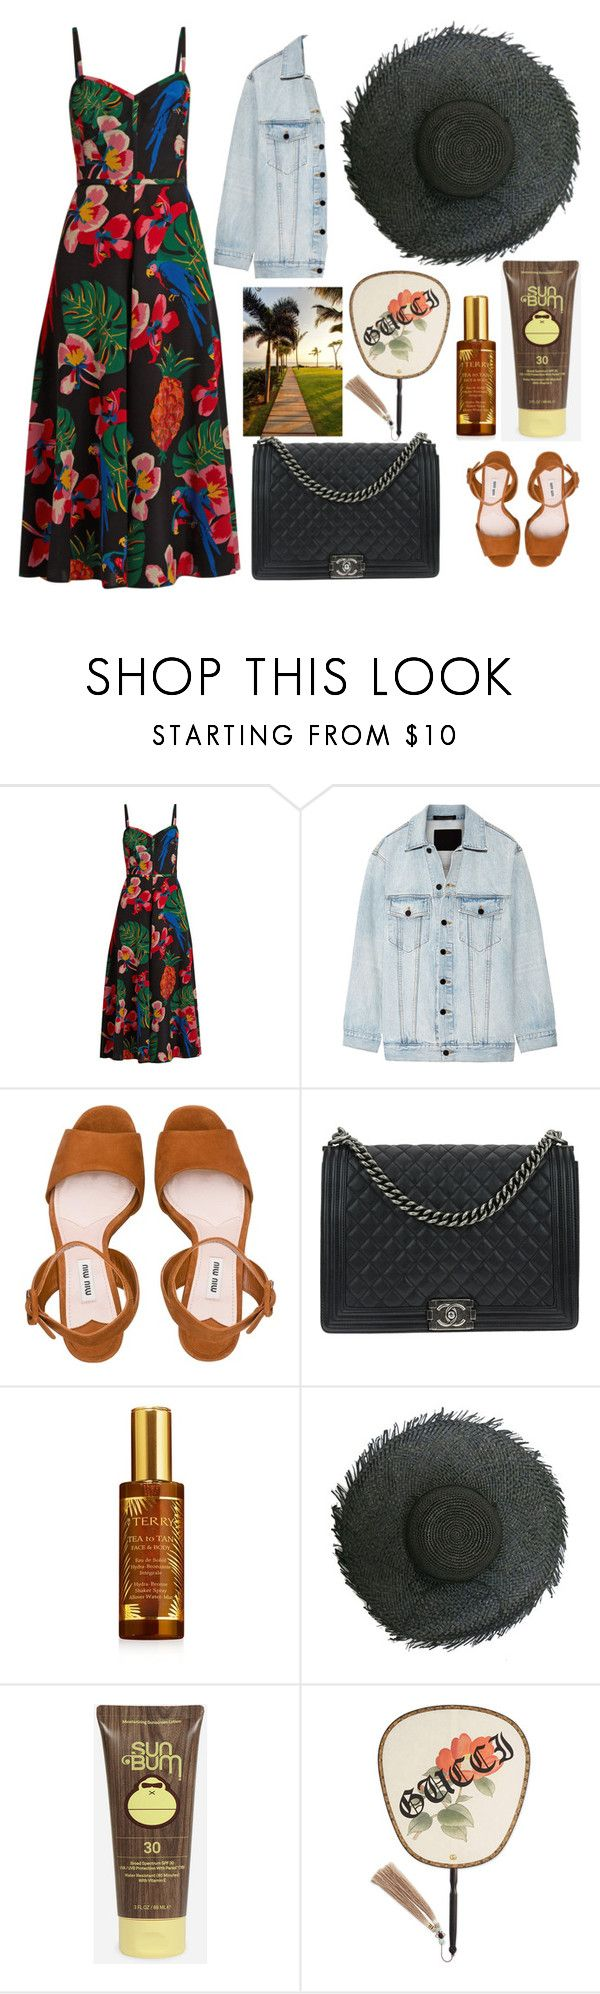 """Mexico"" by sdforthxi ❤ liked on Polyvore featuring Valentino, Alexander Wang, Miu Miu, Chanel, By Terry, Sun Bum and Gucci"